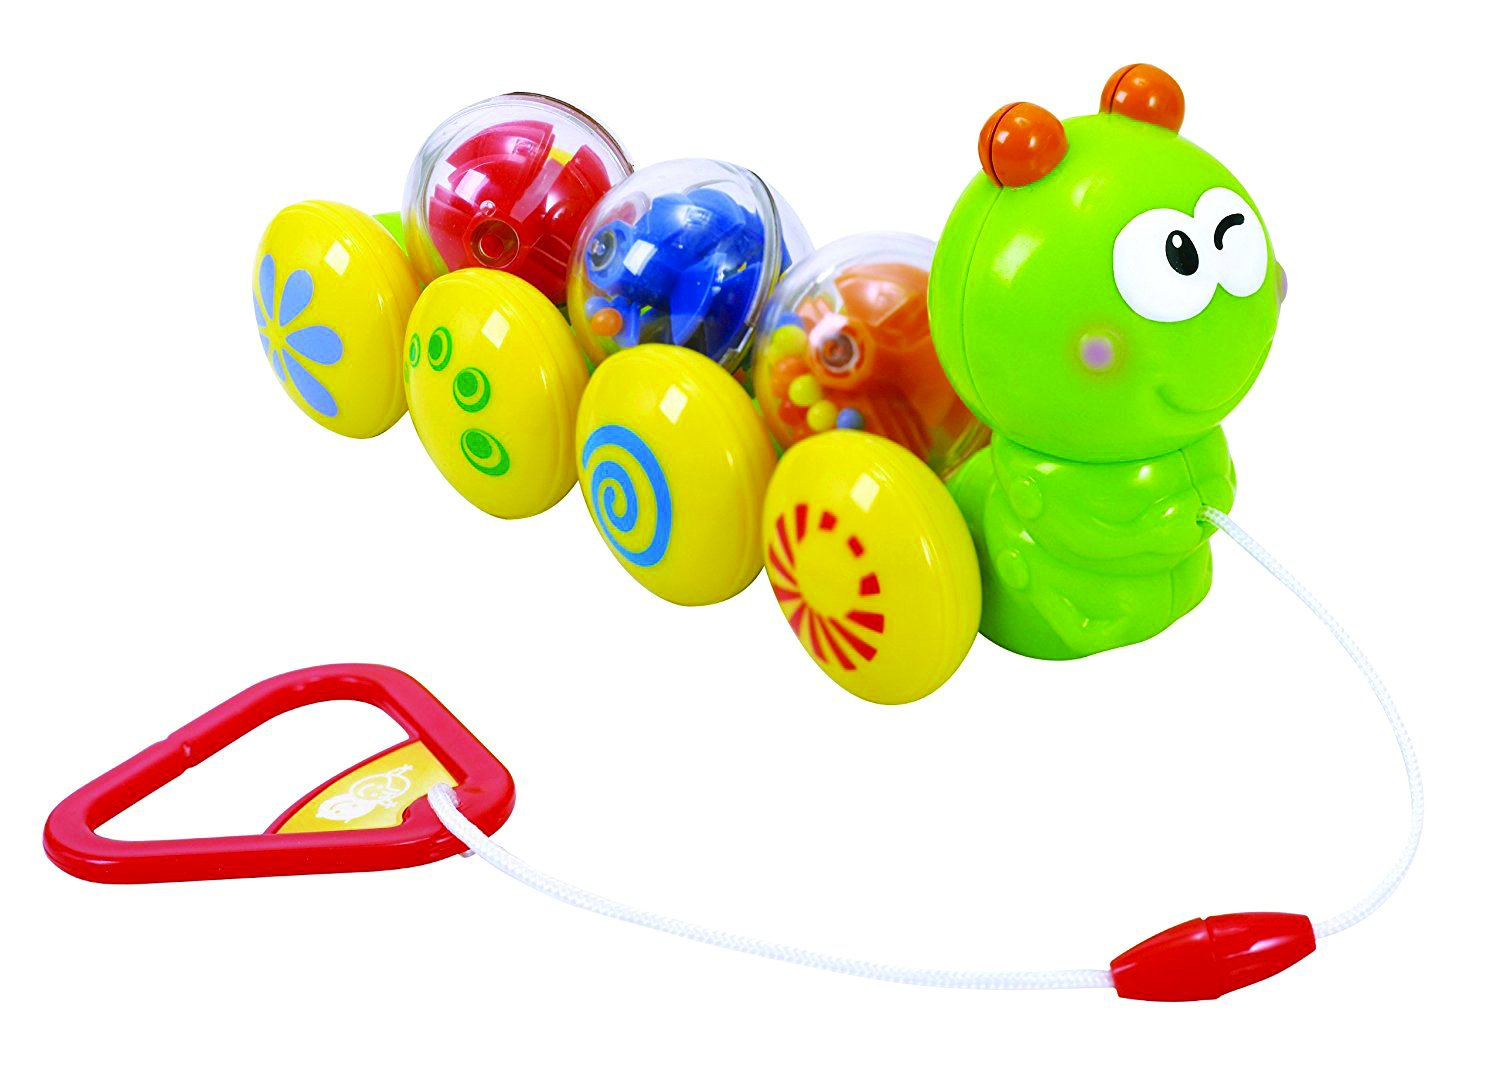 KidSource Wiggly Caterpillar Baby Pull-Along Toy, Green, Blue, Red, Yellow